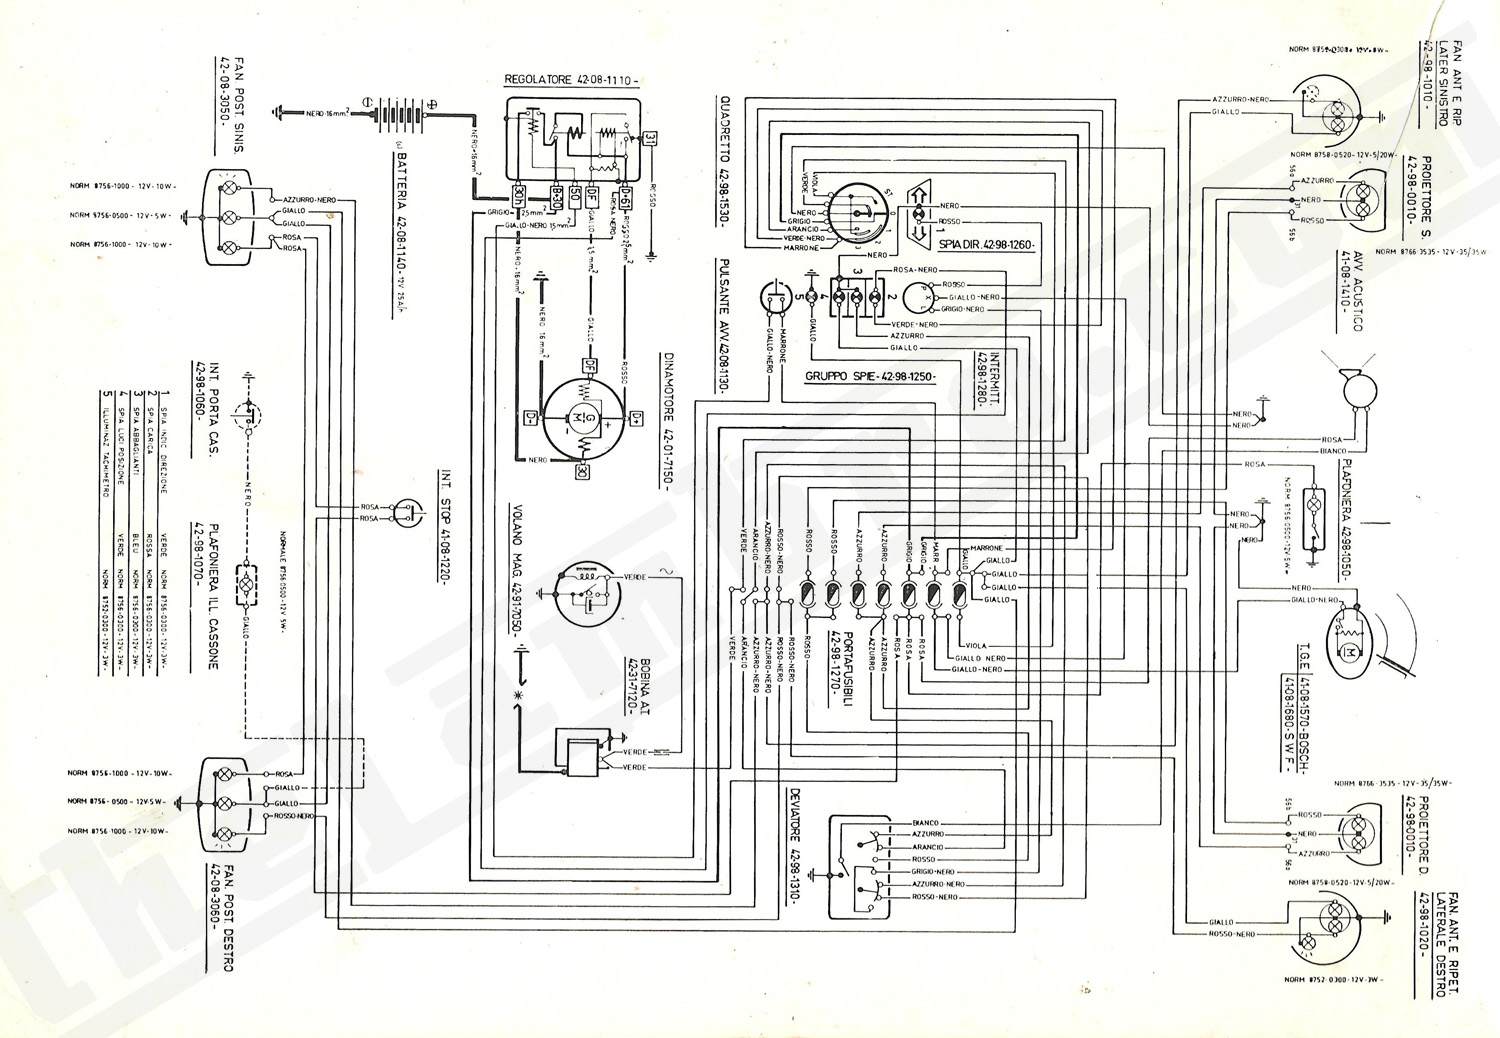 wiringdiagram_500L thelambro com electrics lambretta 12v wiring diagram at bakdesigns.co